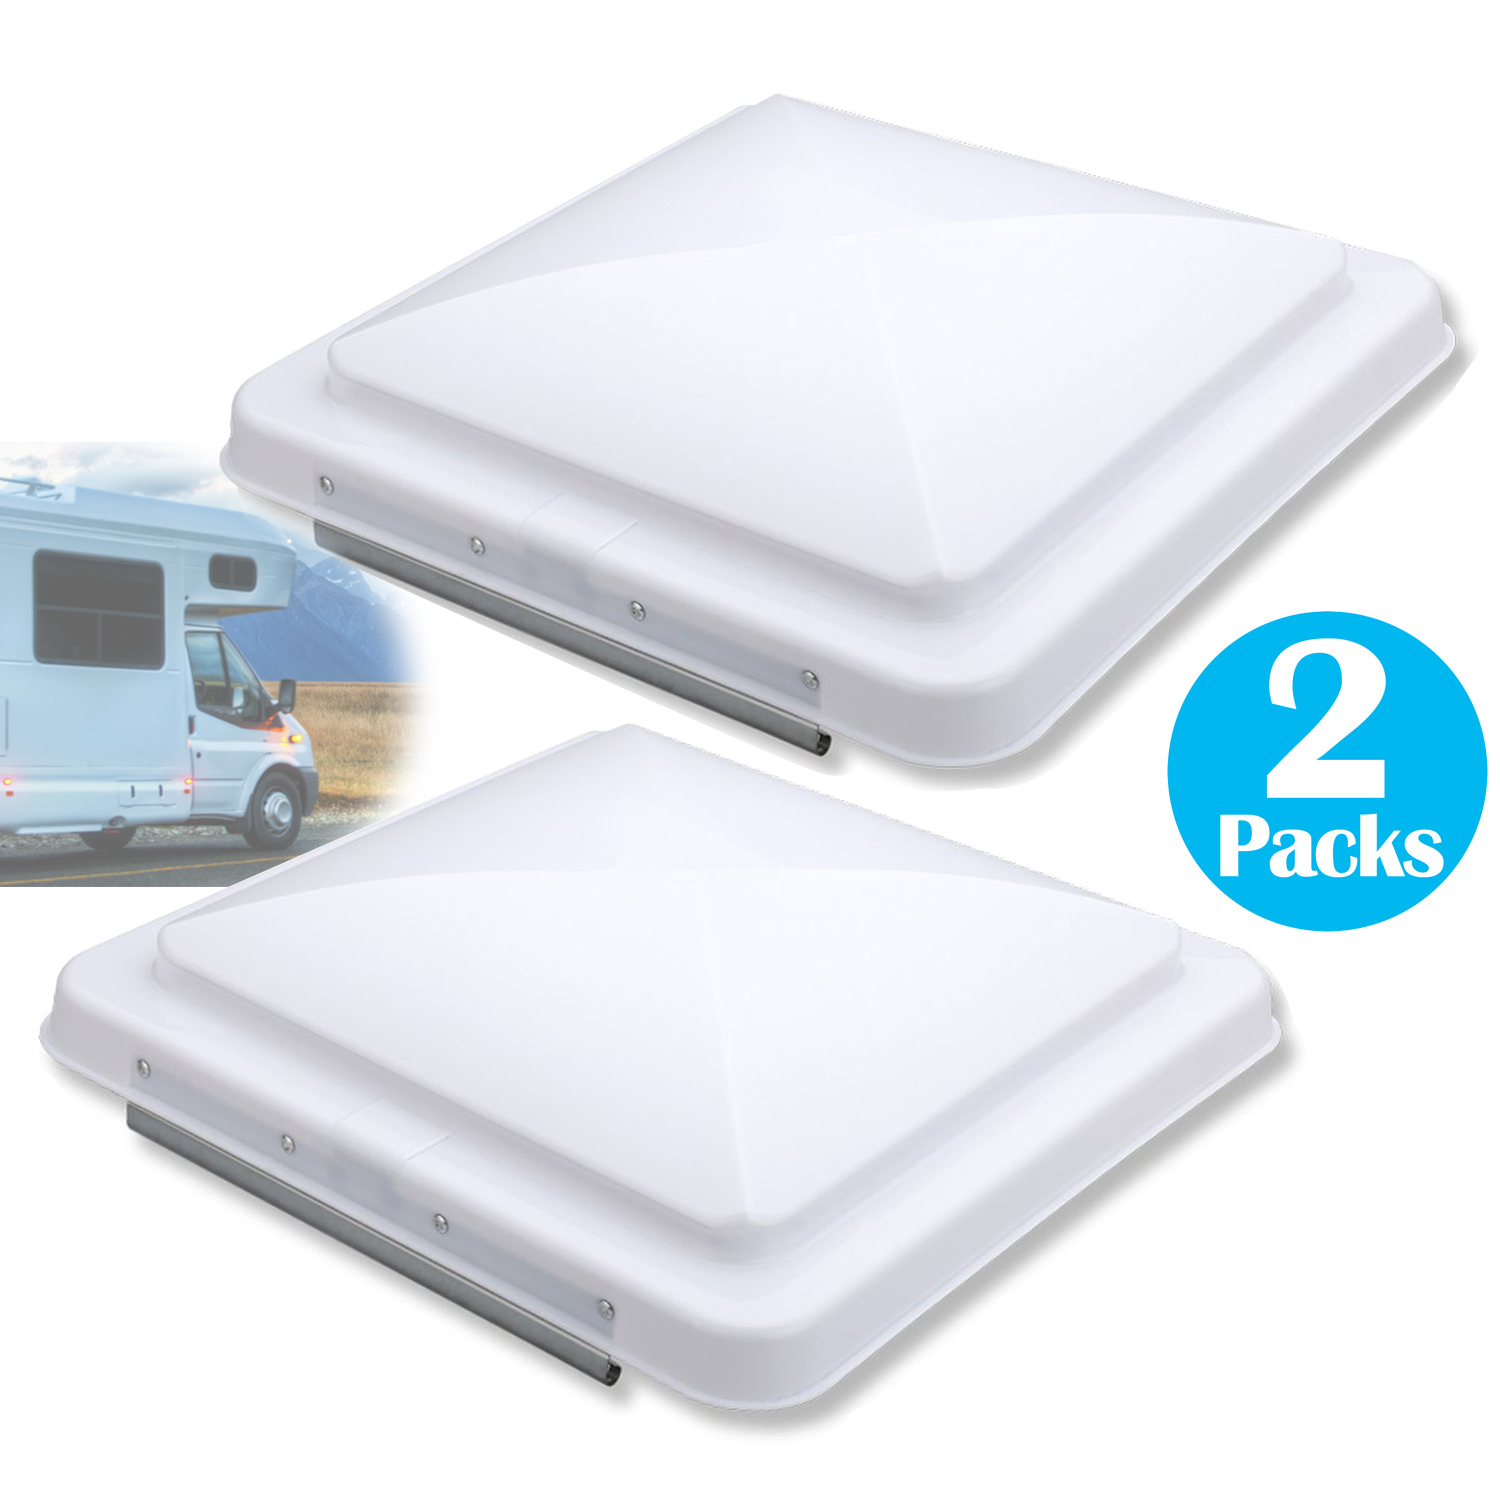 2 packs 14 car rv vents replacement rv roof vent cover for camper trailer motorhome